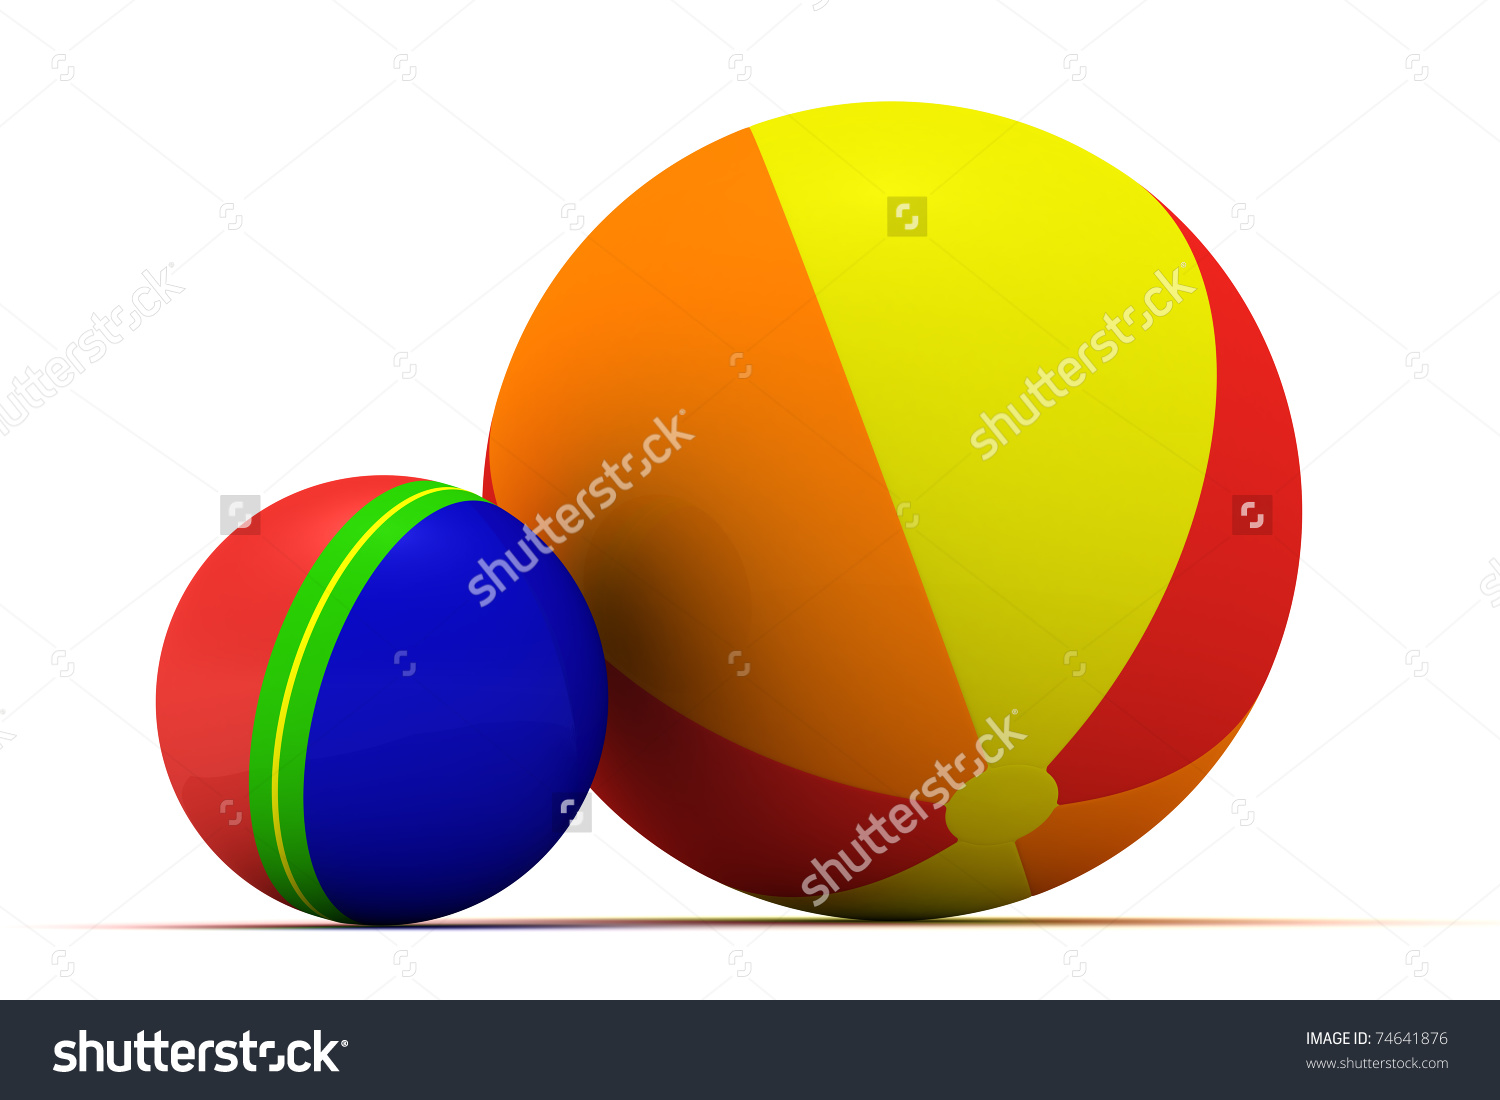 Big and small ball clipart vector freeuse stock Big Small Multicolored Balls Isolated Stock Illustration 74641876 ... vector freeuse stock